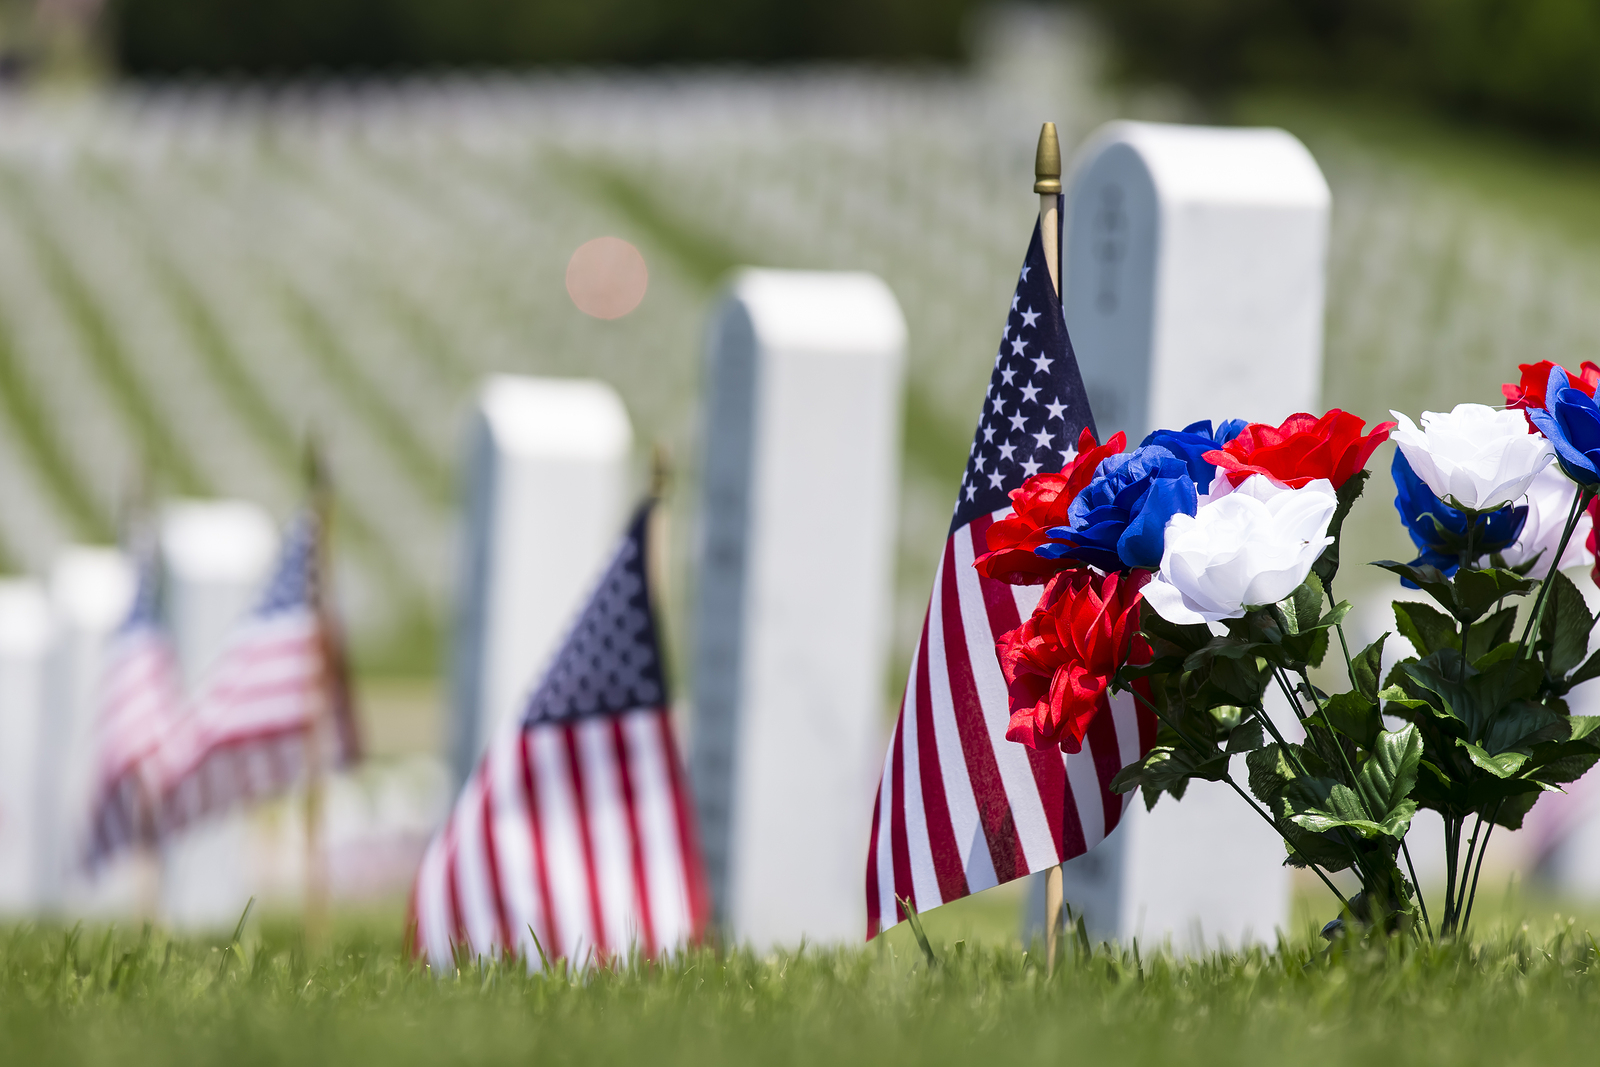 Cape Canaveral Veterans Cemetery: A Comfort to Military Families